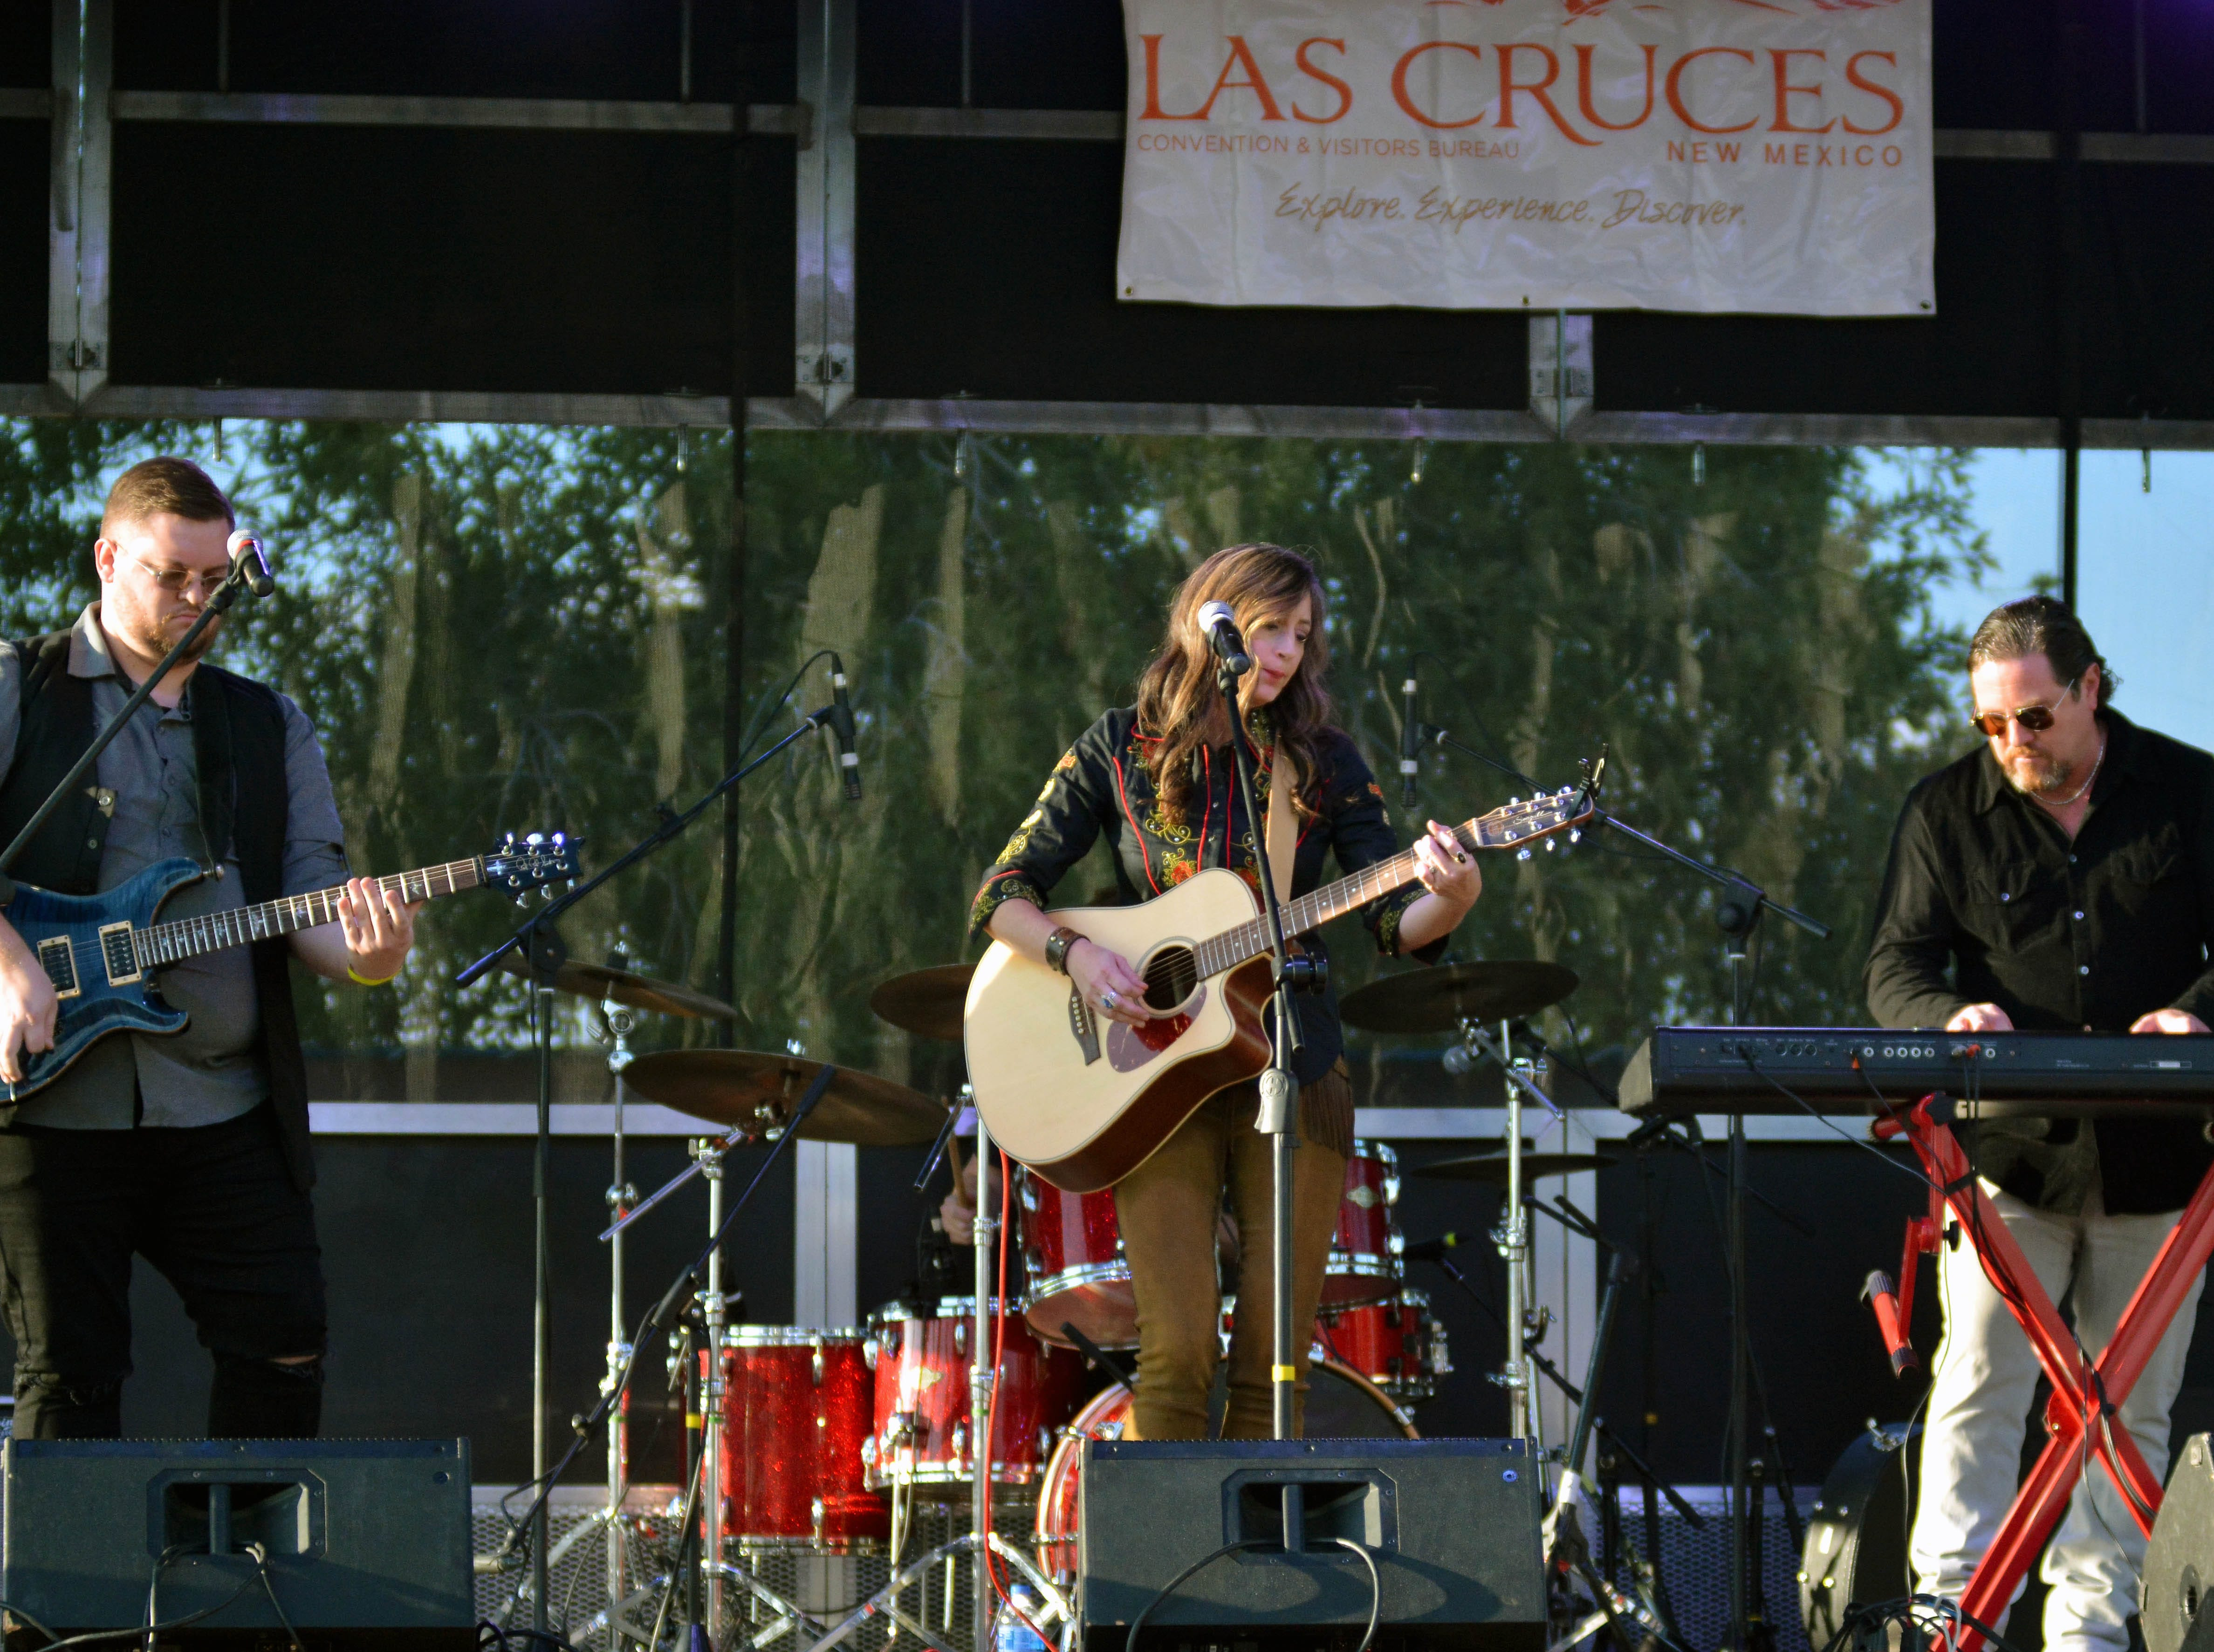 Coco O'Conner and her band open up the Las Cruces Country Music Festival on Friday, Oct. 19, 2018.